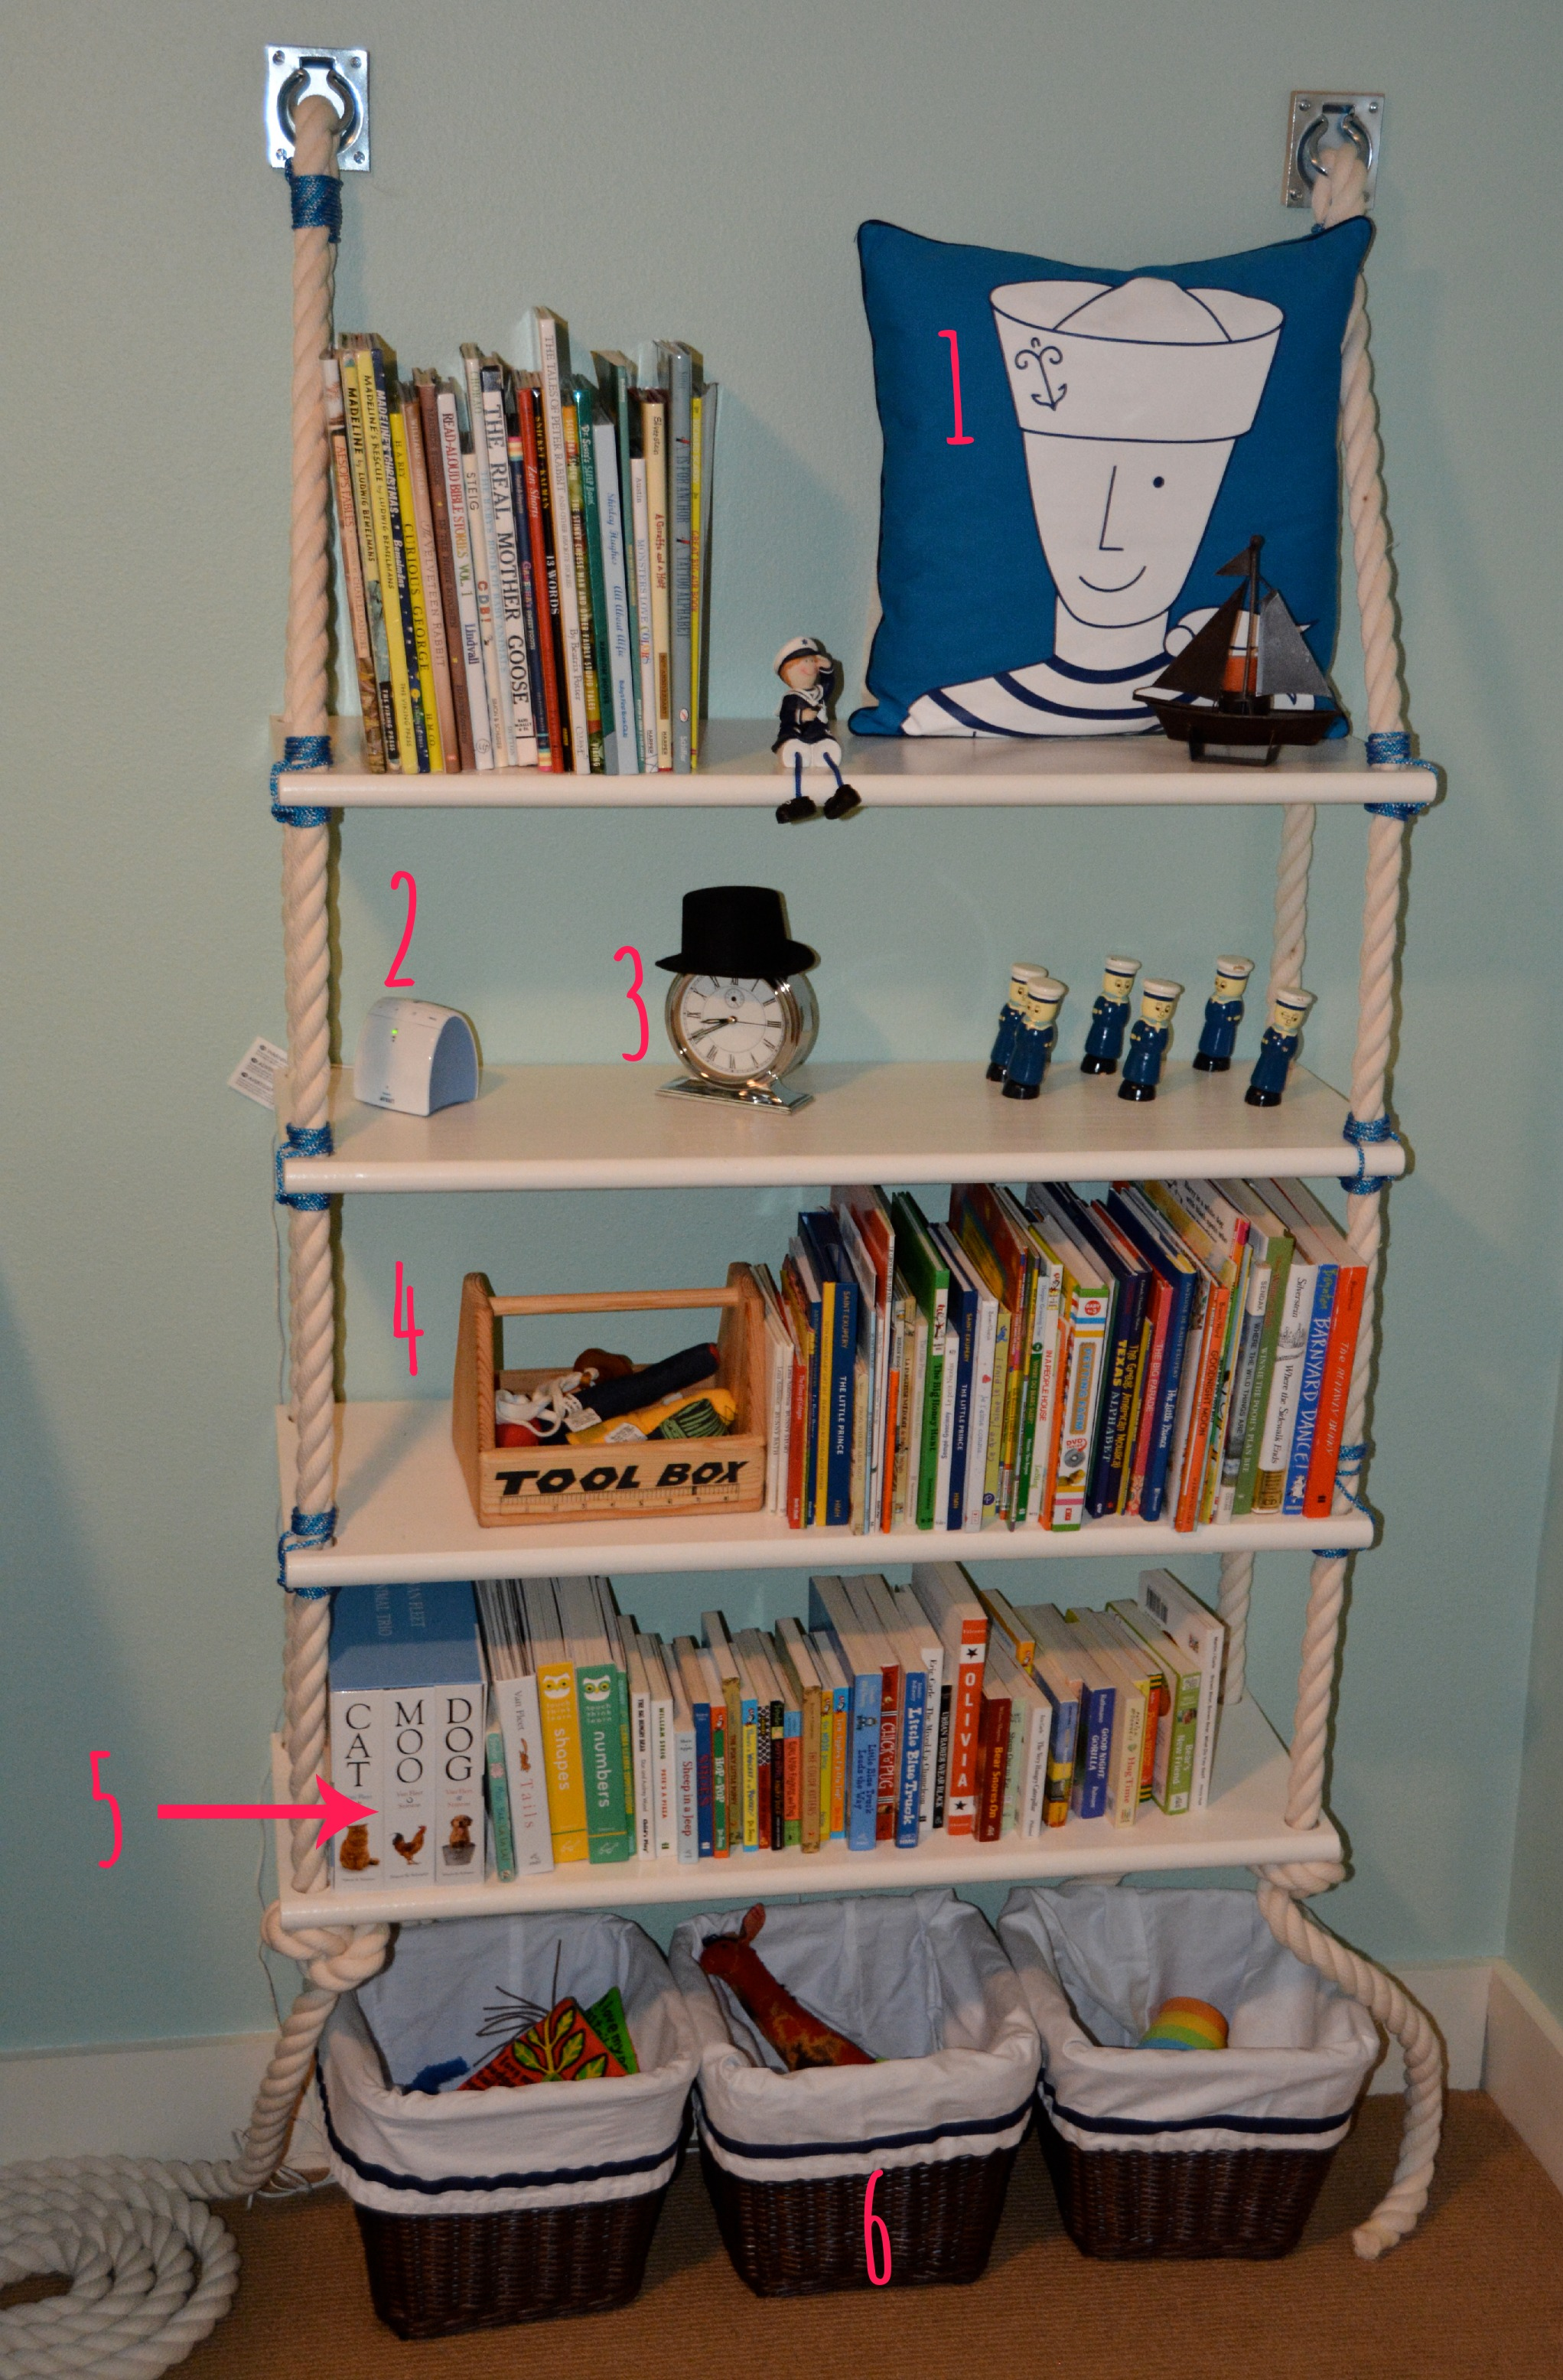 The rope on the bookcase adds a fun twist without being too kitschy.